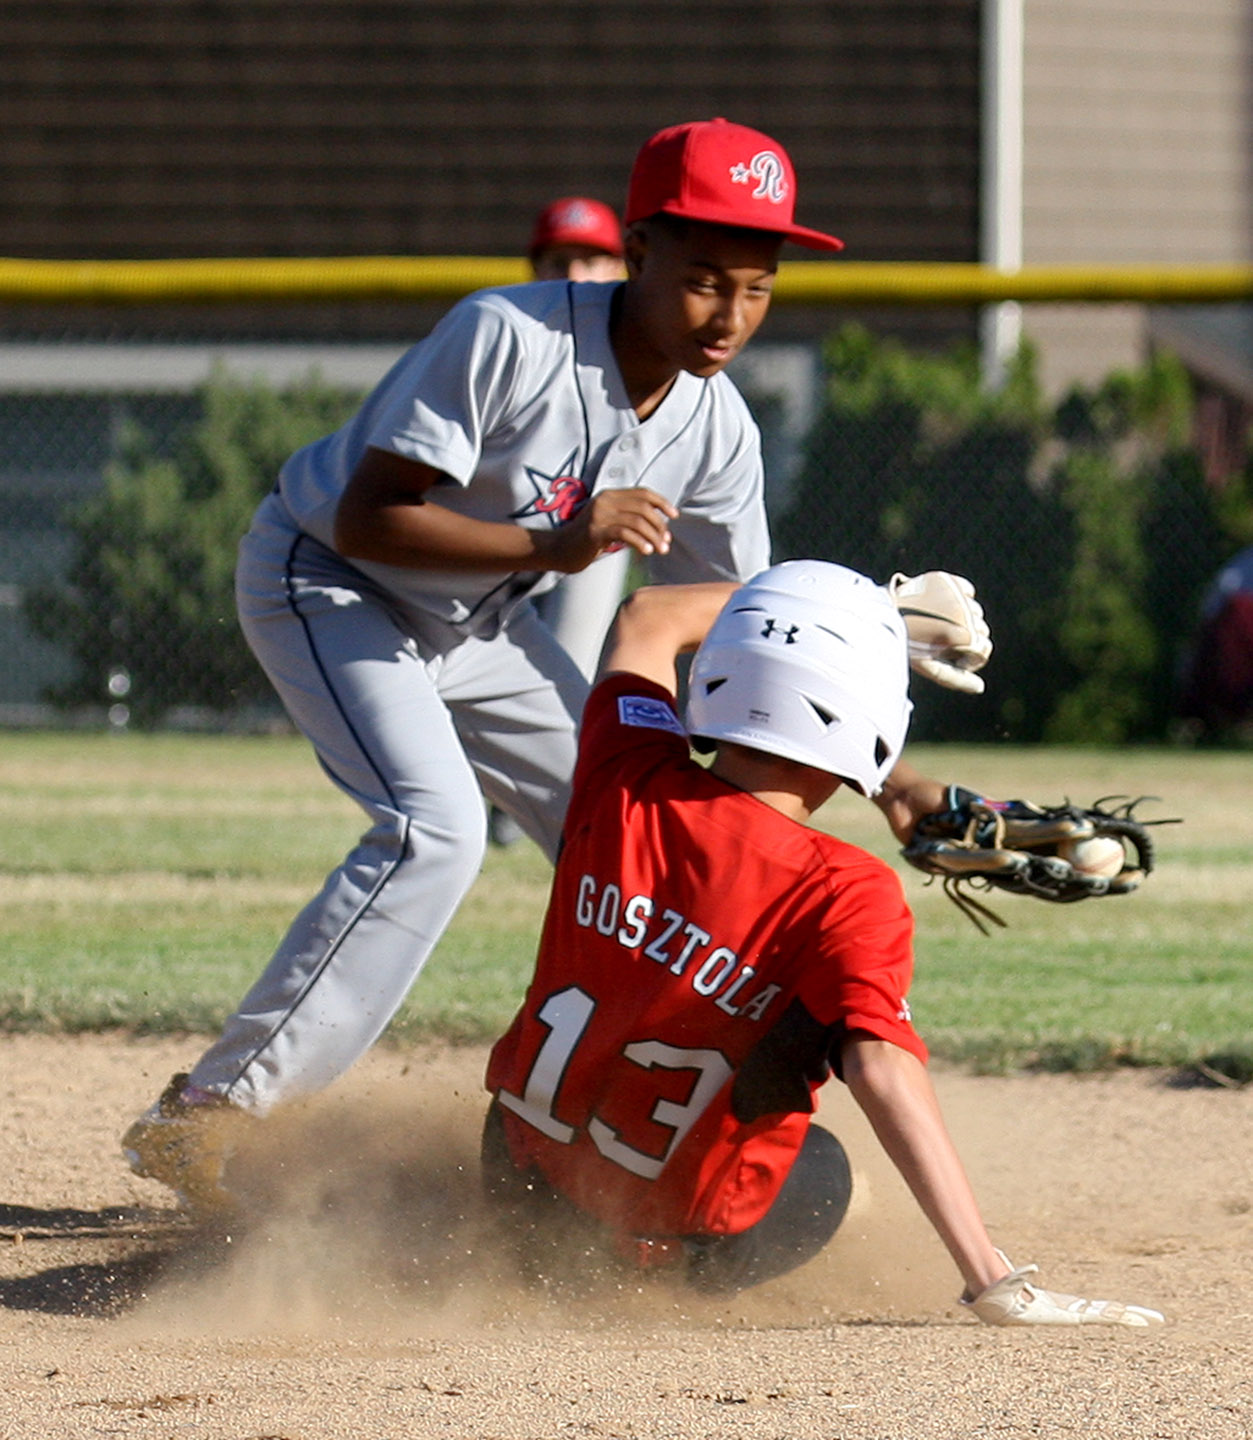 Miles Gosztola of West Seattle is safe sliding into second base as Renton's Marcus McCarthy attempts to tag him out.